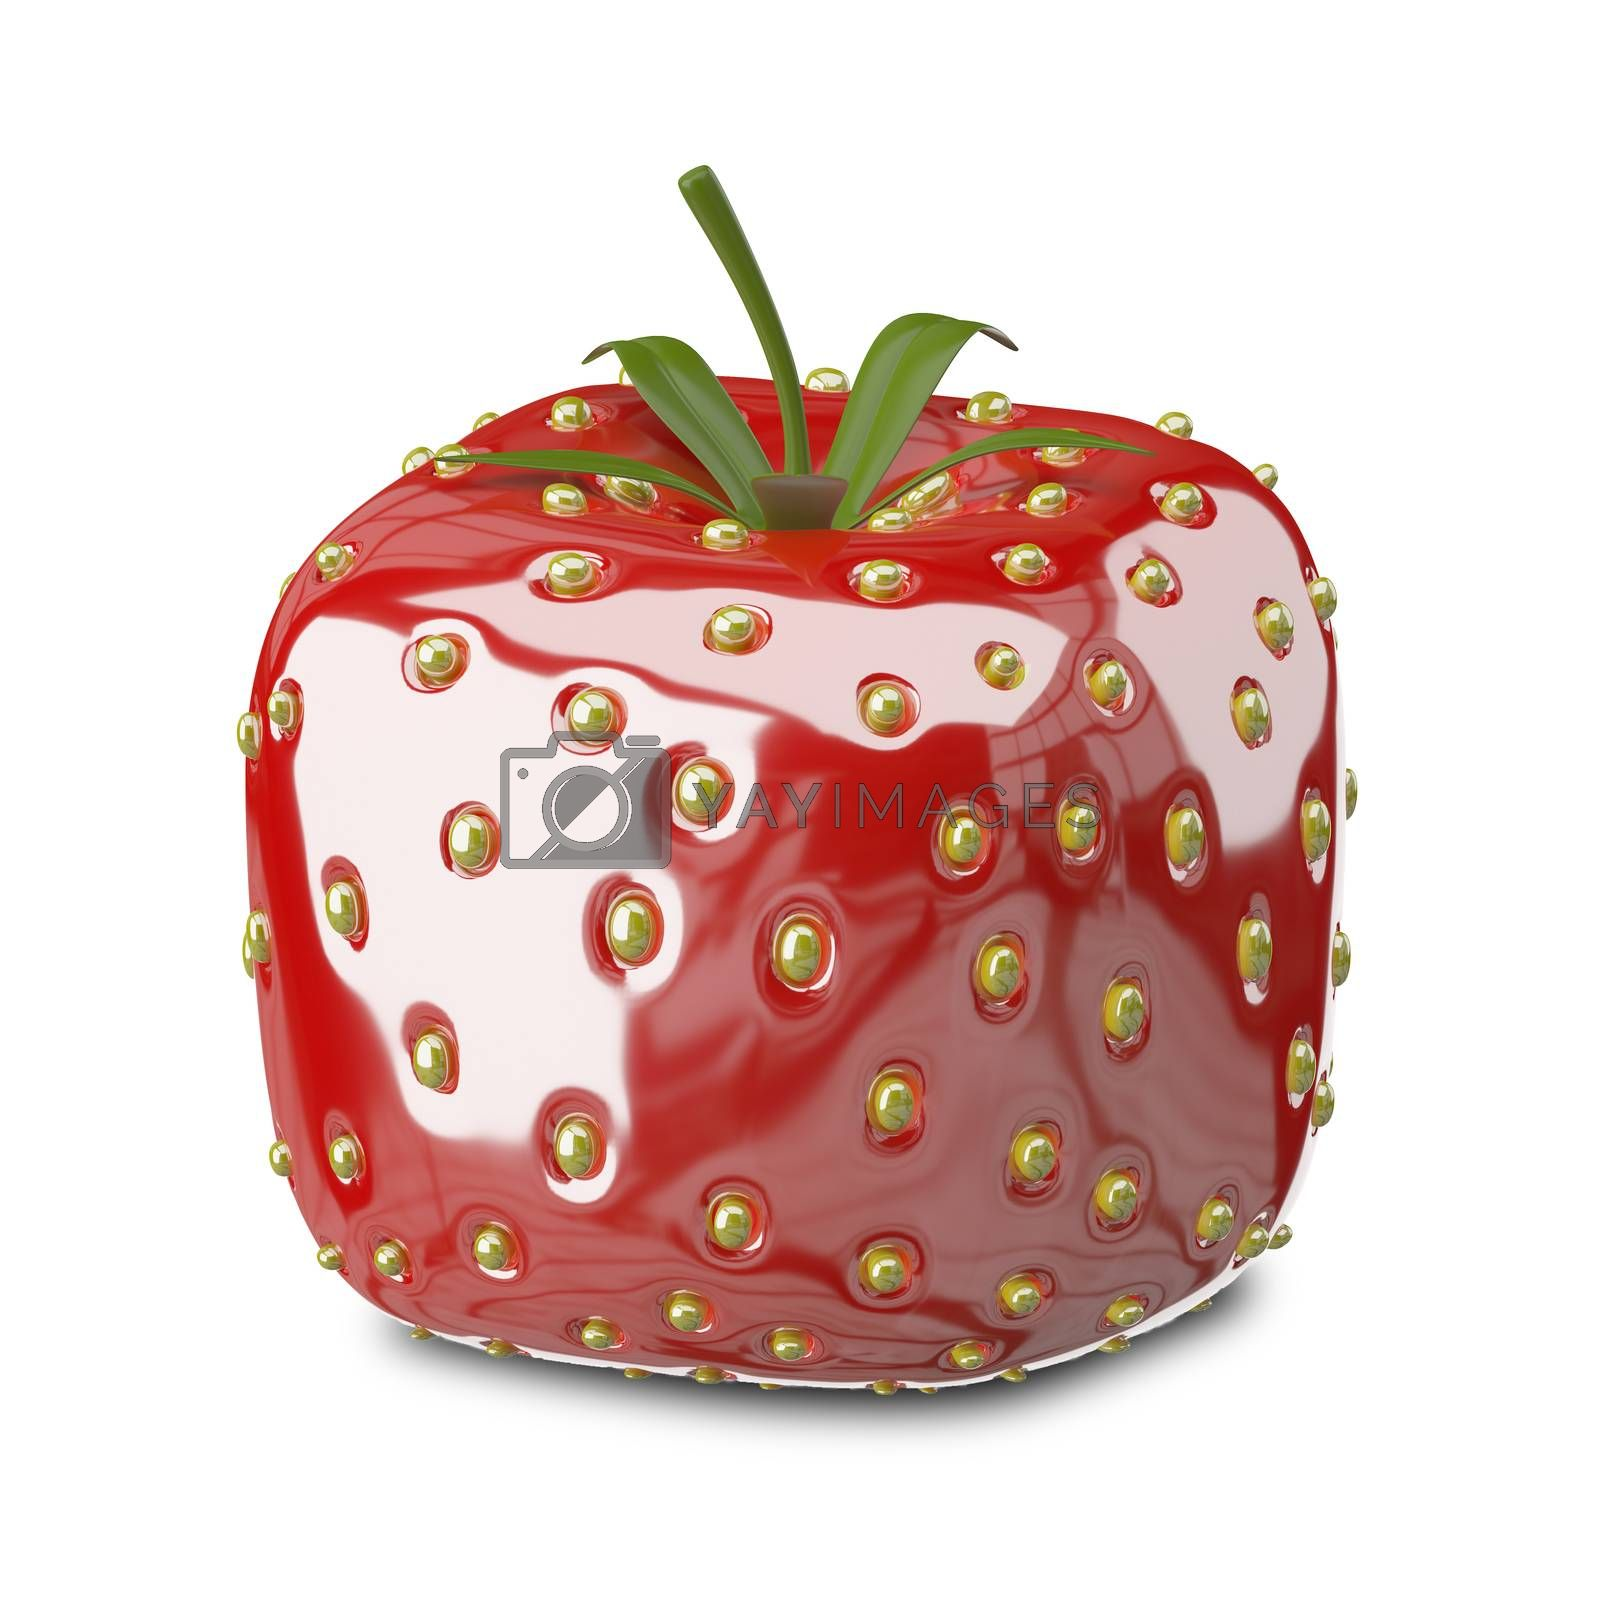 3D Illustration Square Strawberry by brux